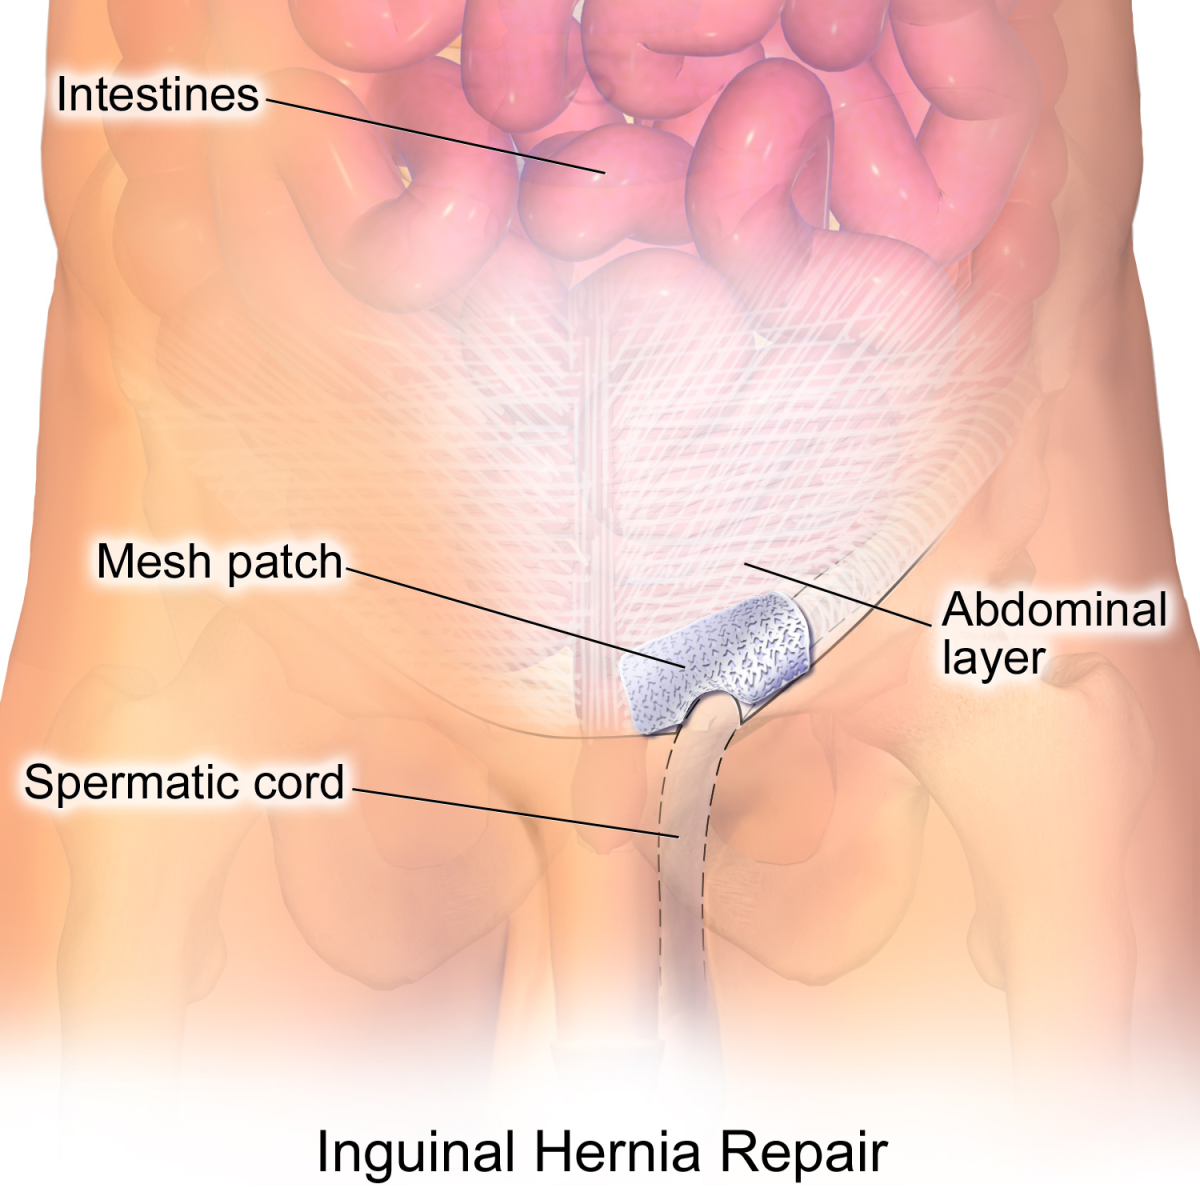 Hernias are usually fixed by putting the protruding tissue back in place and reinforcing the opening with a sterile mesh.